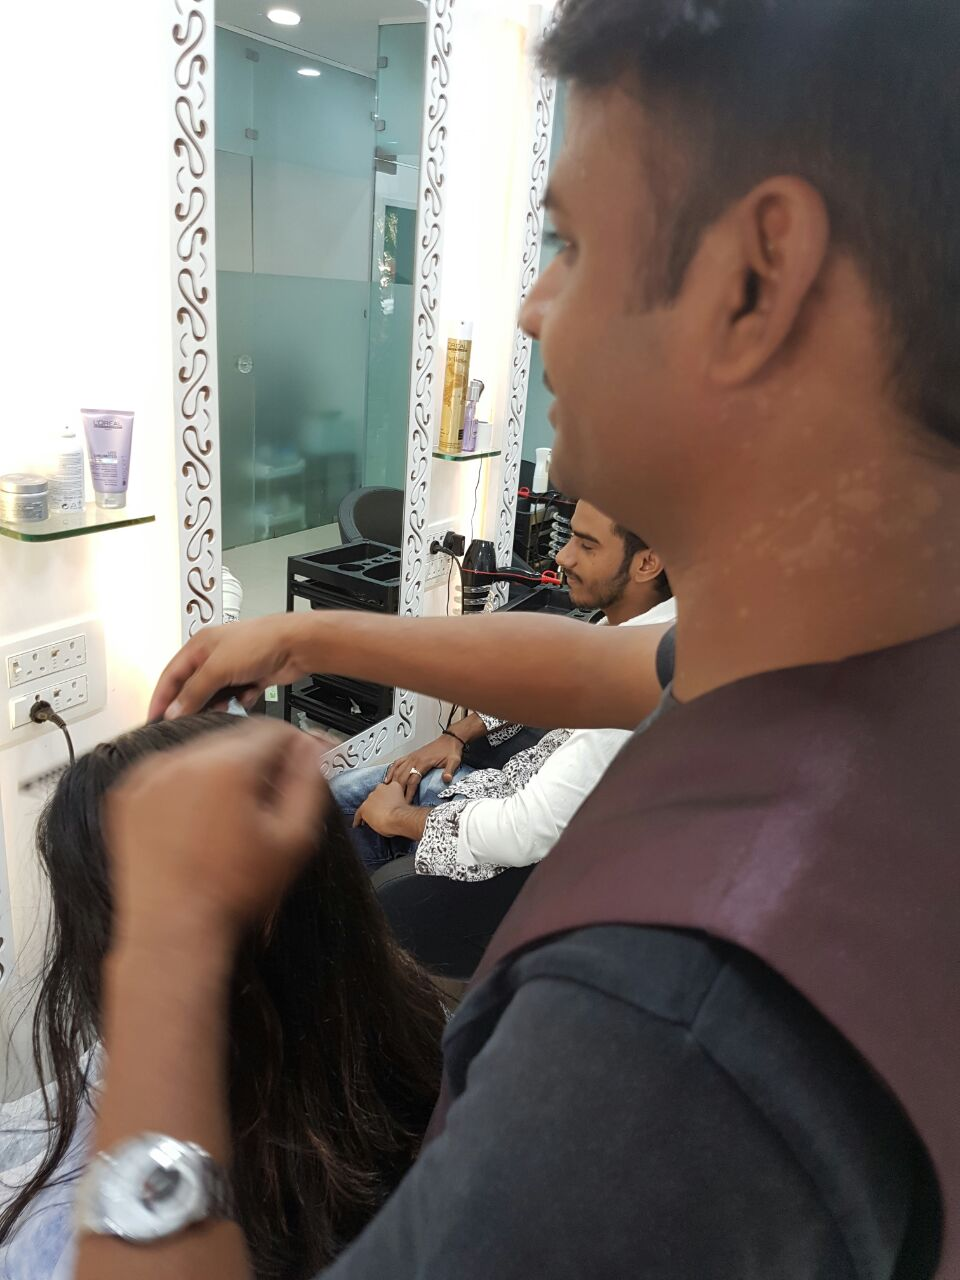 unisex salon in mira road | manaal unisex salon